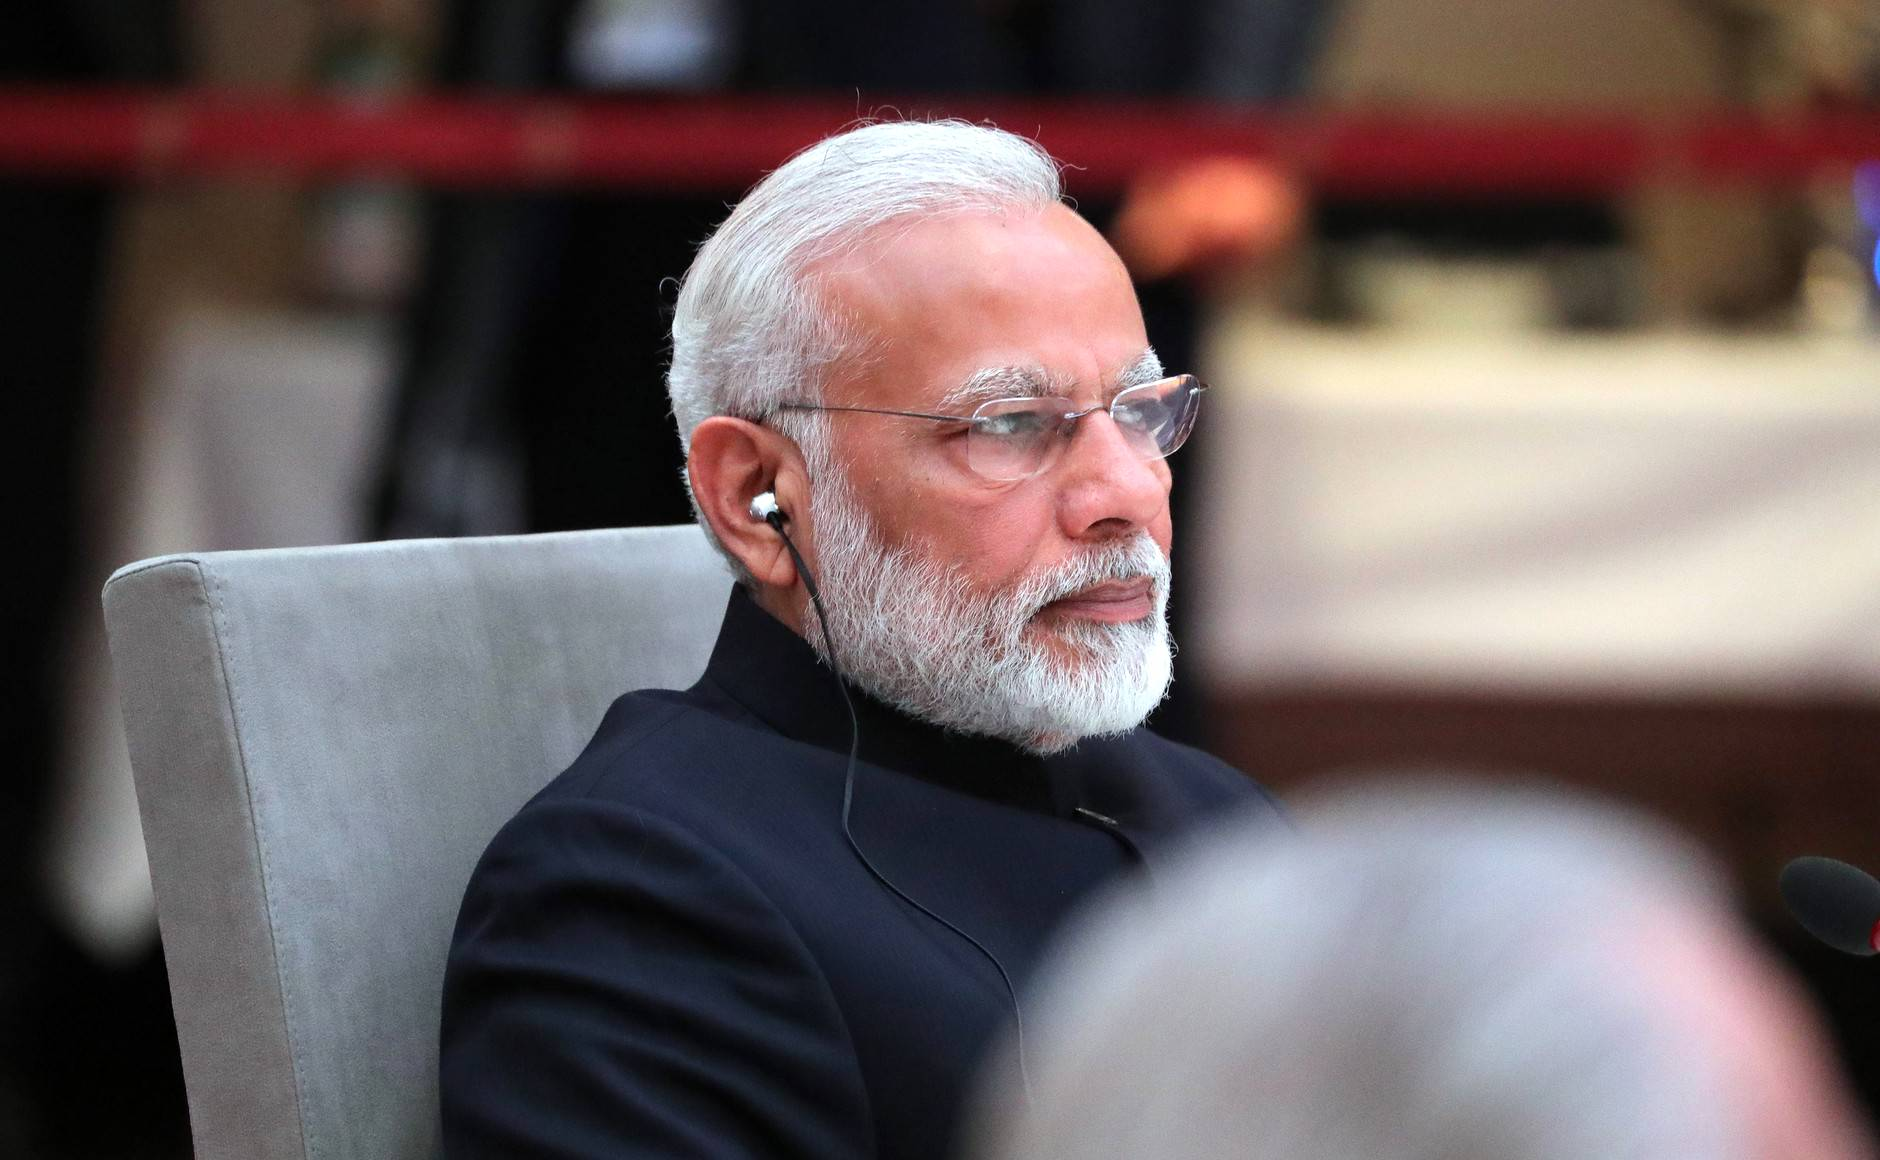 PM Modi's official website Twitter account gets hacked